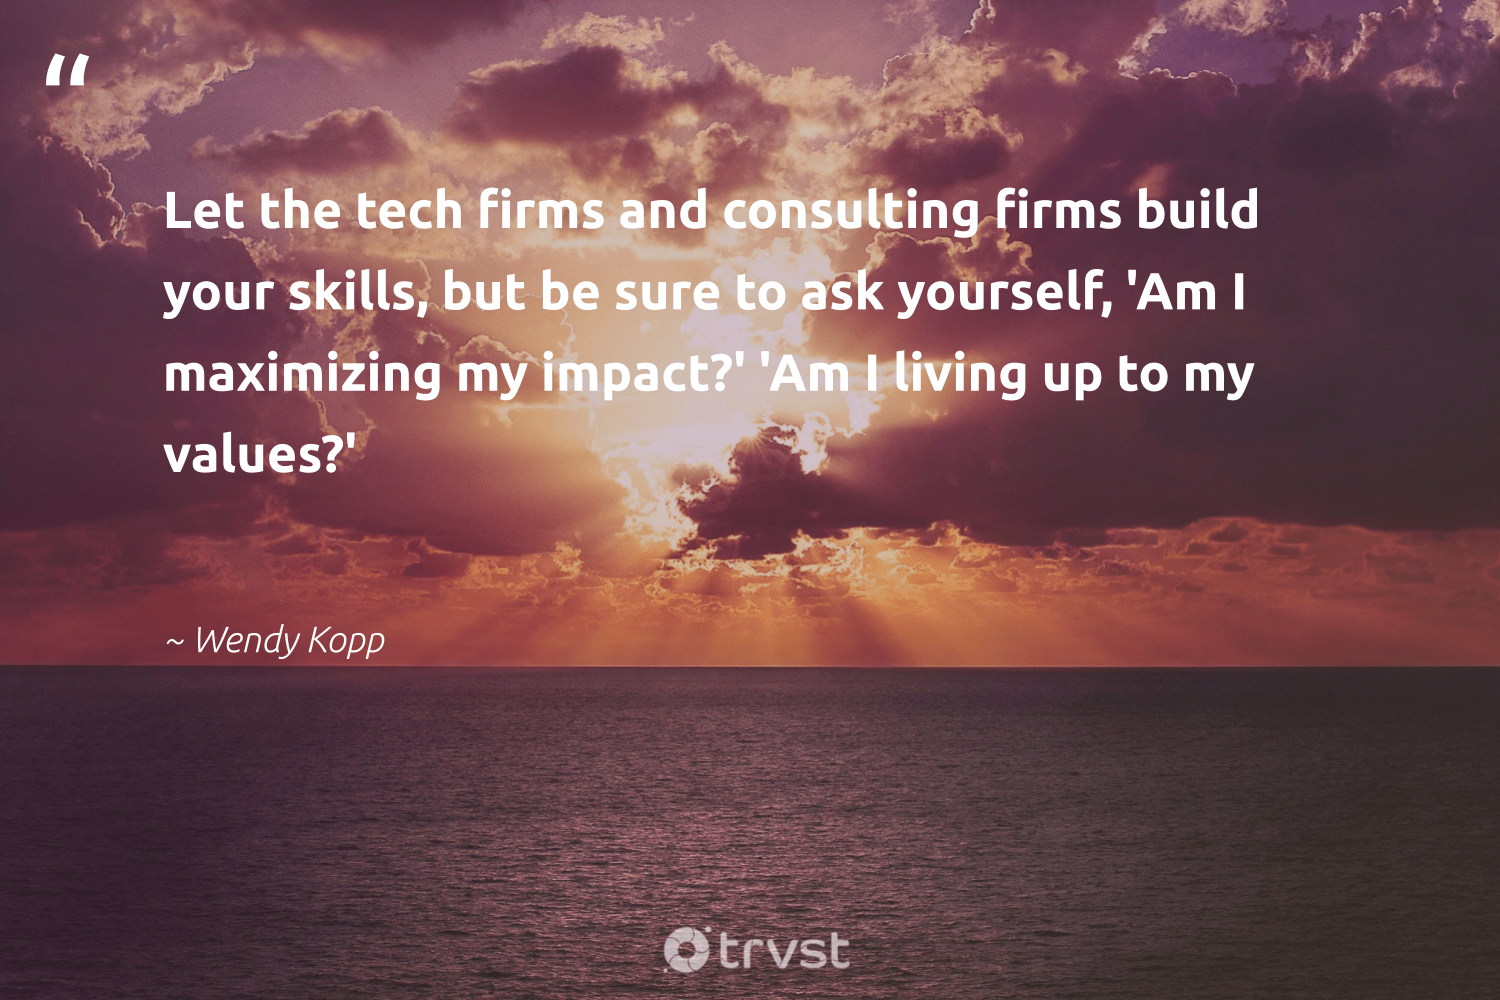 """""""Let the tech firms and consulting firms build your skills, but be sure to ask yourself, 'Am I maximizing my impact?' 'Am I living up to my values?'""""  - Wendy Kopp #trvst #quotes #impact #makeadifference #thinkgreen #betterplanet #gogreen #giveback #socialimpact #socialchange #dotherightthing #ethicalbusiness"""